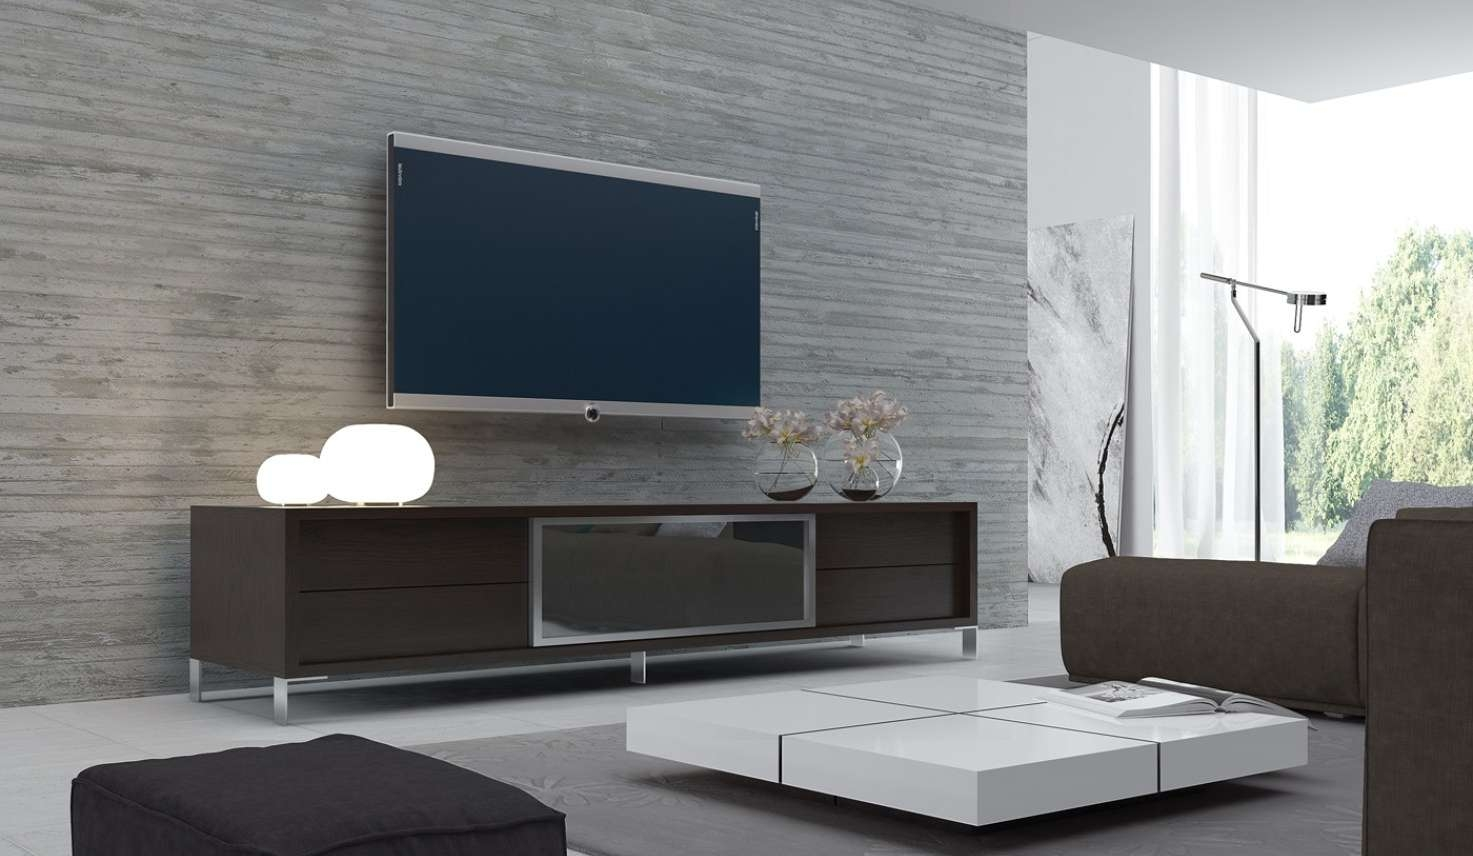 Tv : Exceptional Modern Tv Furniture Cabinets Modern Charm With Stylish Tv Cabinets (View 17 of 20)